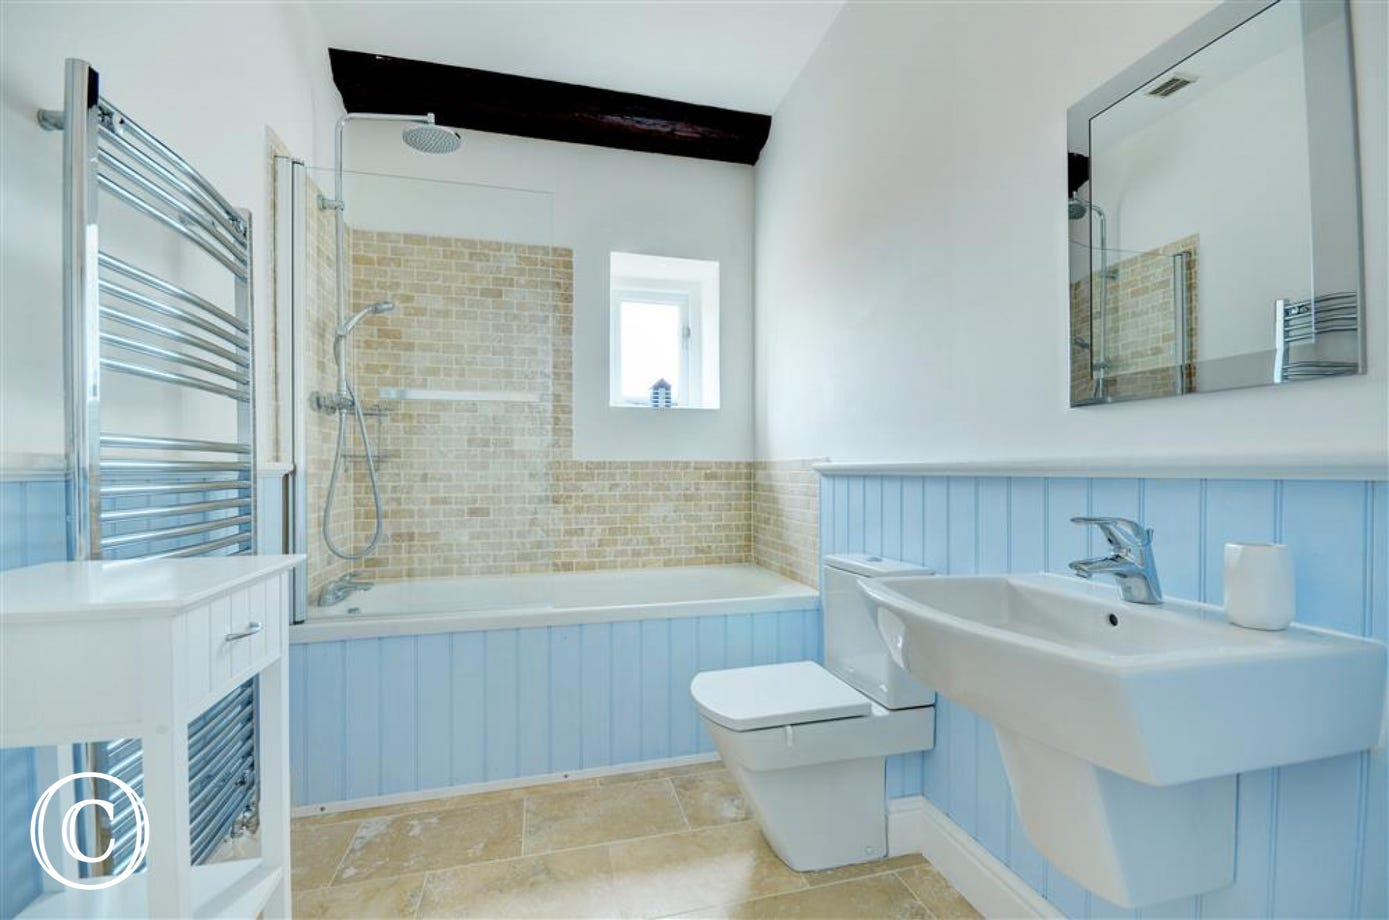 Lovely bright bathroom with bath and over bath rain shower